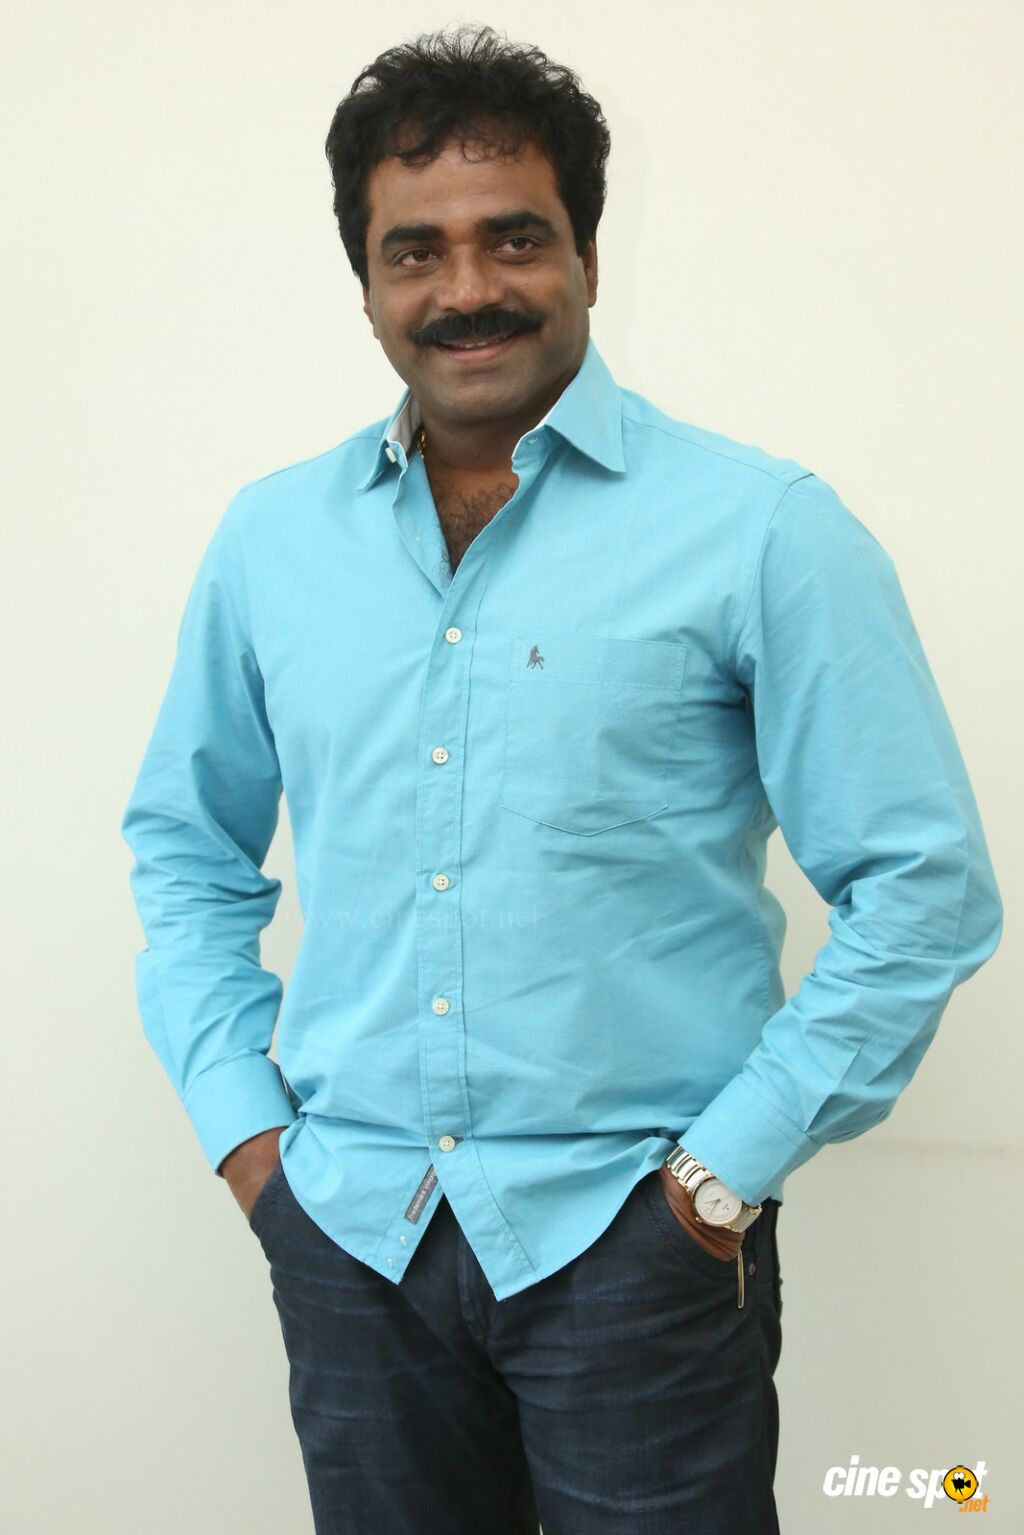 rockline venkatesh imagesrockline venkatesh net worth, rockline venkatesh contact number, rockline venkatesh movies, rockline venkatesh family, rockline venkatesh wife, rockline venkatesh son marriage, rockline venkatesh caste, rockline venkatesh age, rockline venkatesh images, rockline venkatesh mall, rockline venkatesh next movie, rockline venkatesh biography, rockline venkatesh office, rockline venkatesh upcoming movies, rockline venkatesh photos, rockline venkatesh brother, rockline venkatesh bajrangi bhaijaan, rockline venkatesh twitter, rockline venkatesh producer, rockline venkatesh in weekend with ramesh